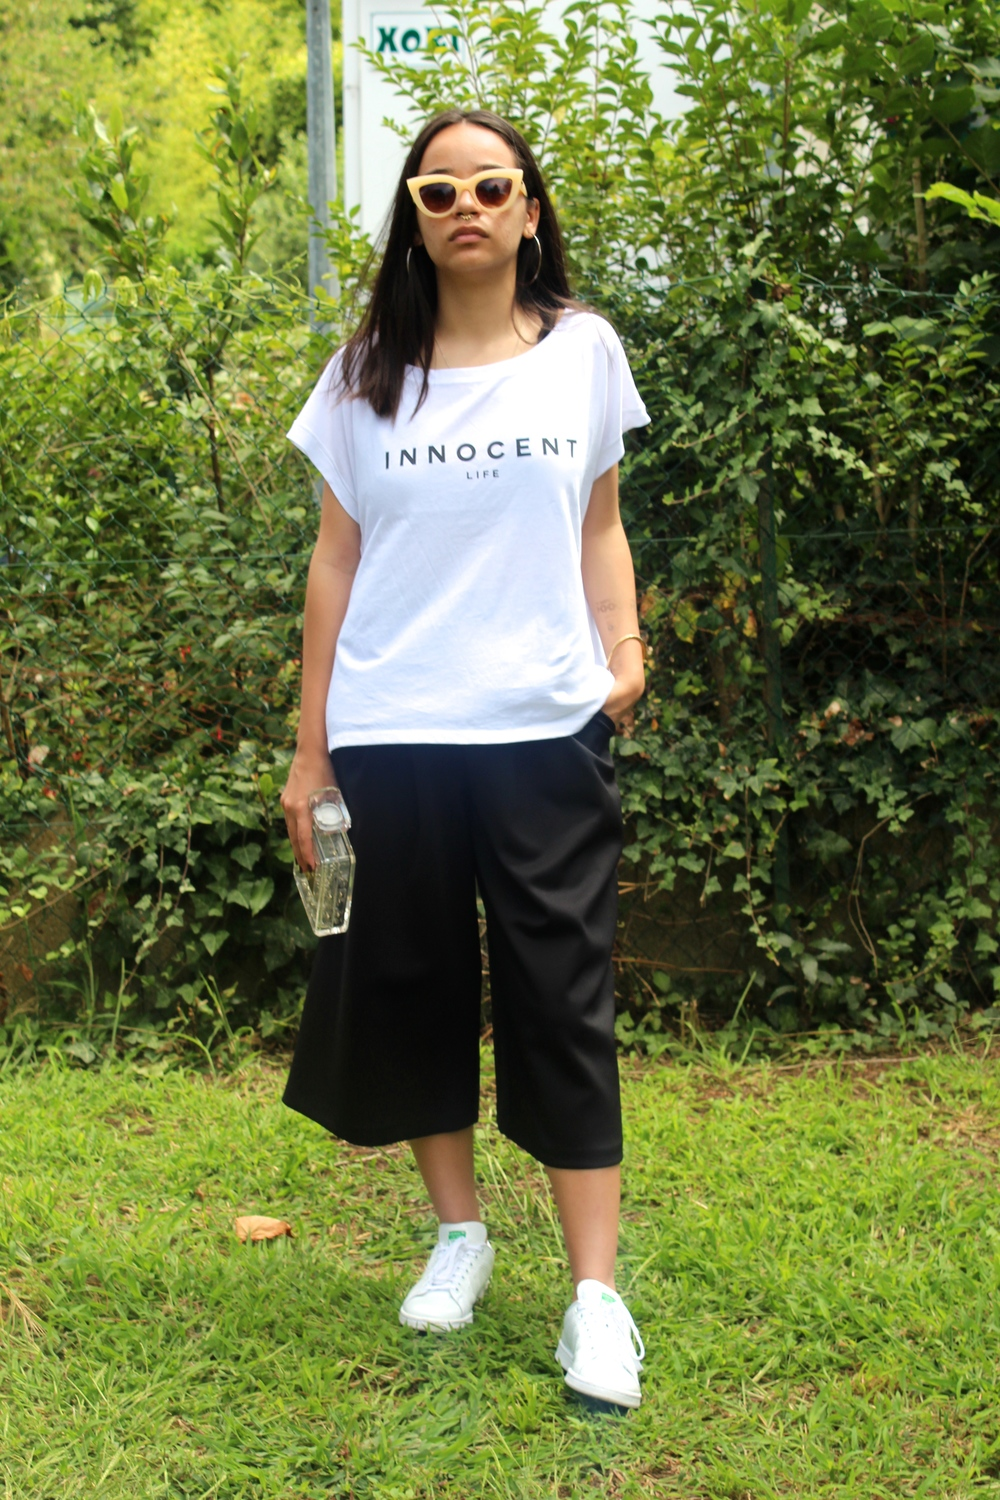 The Innocent Life t-shirt featured in a classier yet relaxed outfit.